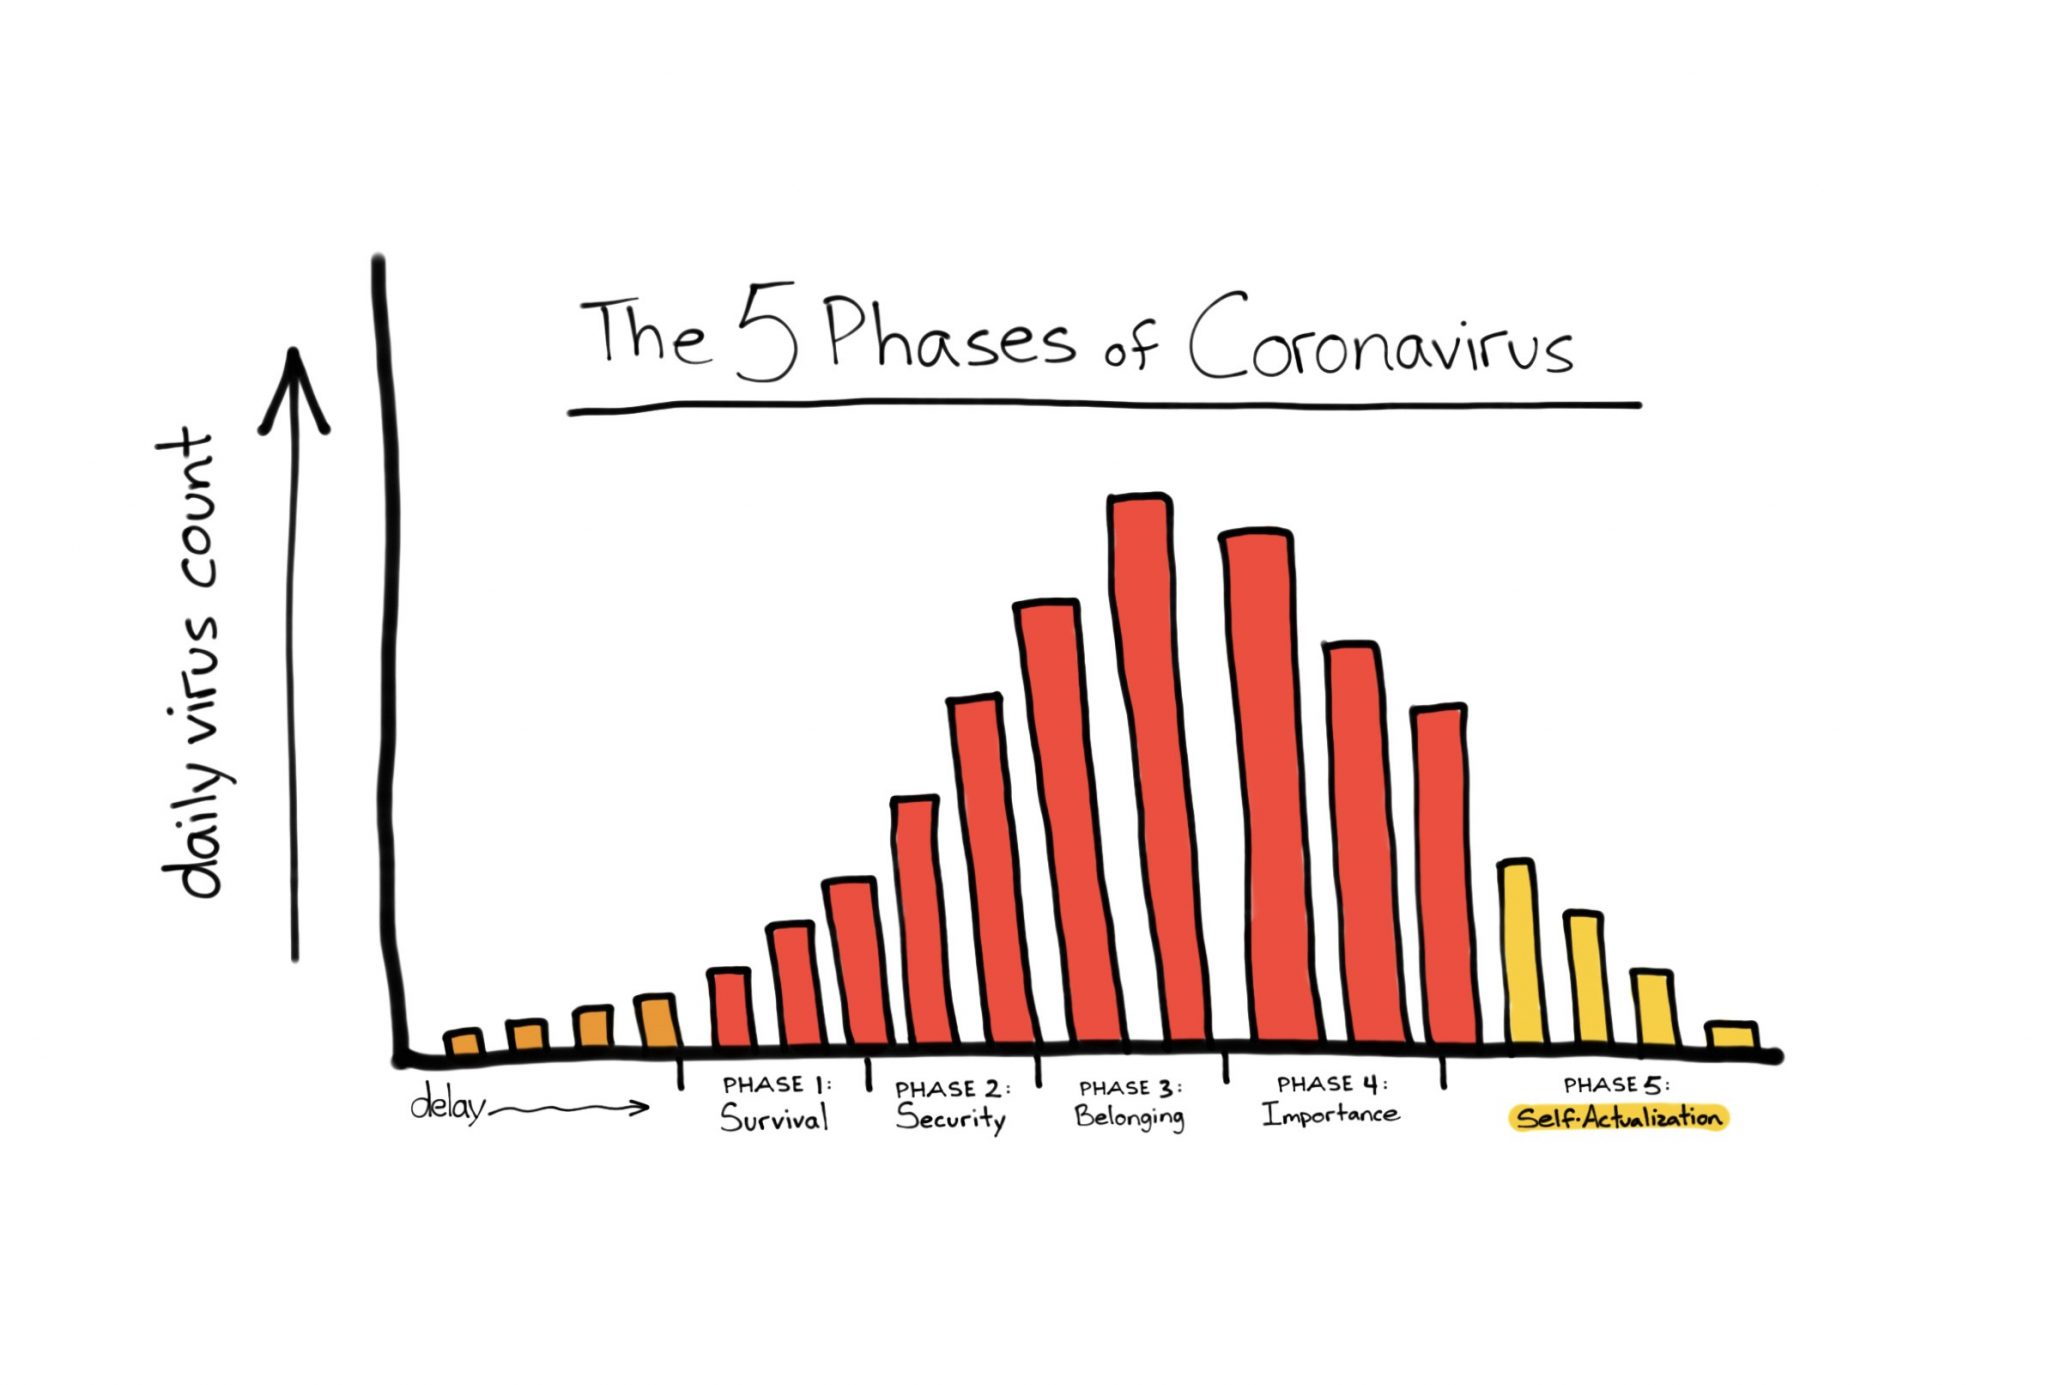 the 5 phases of coronavirus